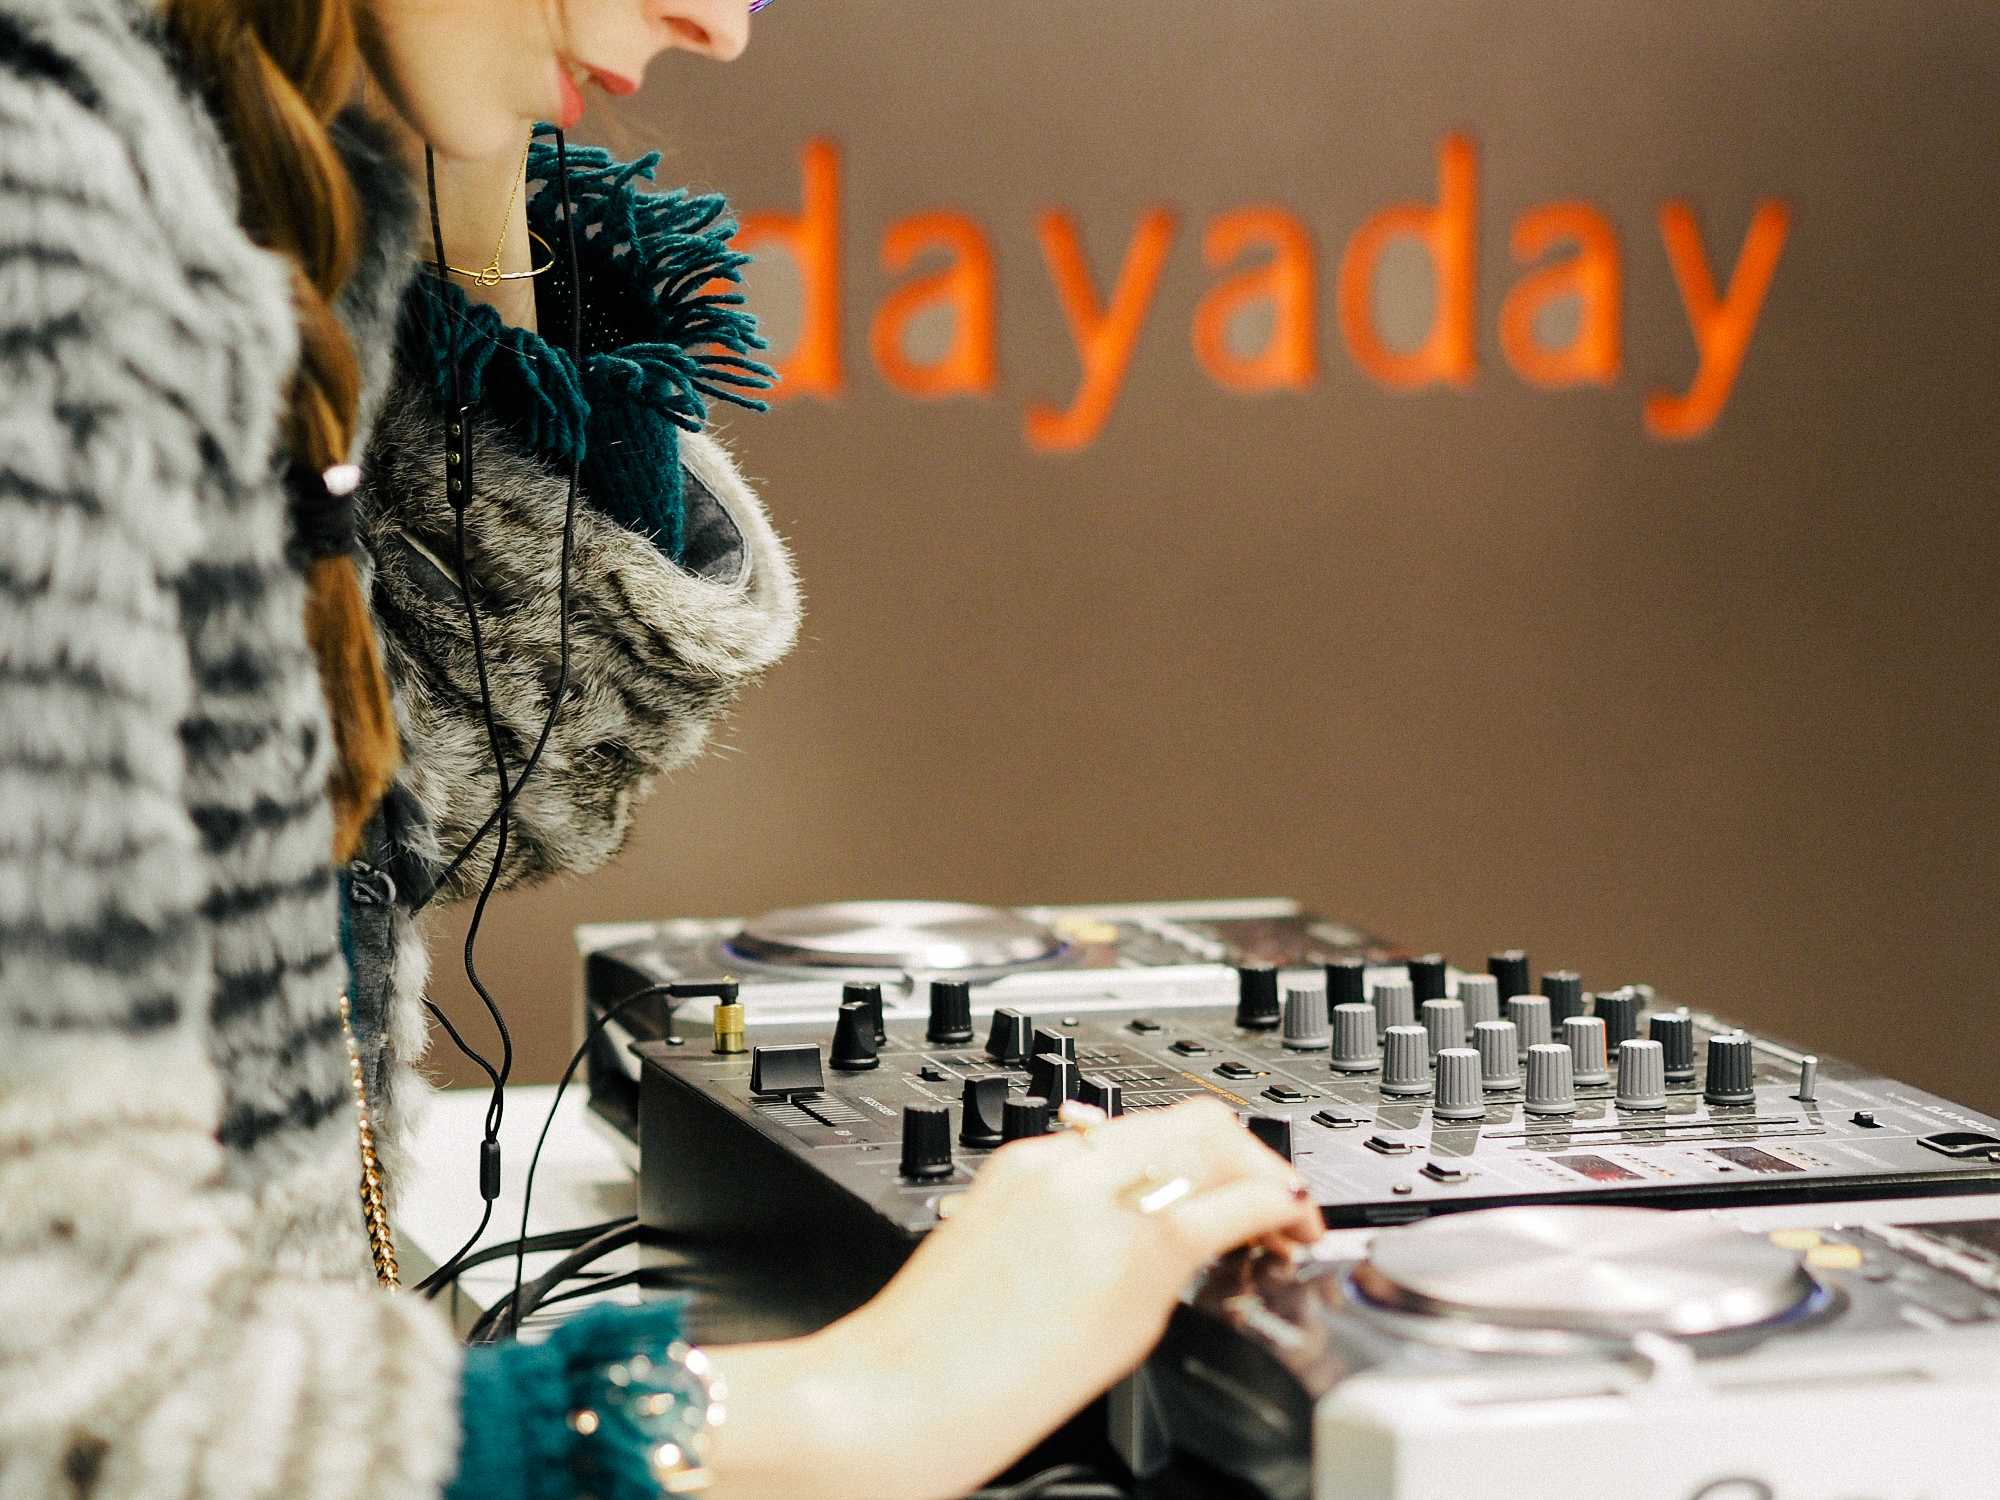 DAYADAY-DJ-SET-ANNA-PONSA-01